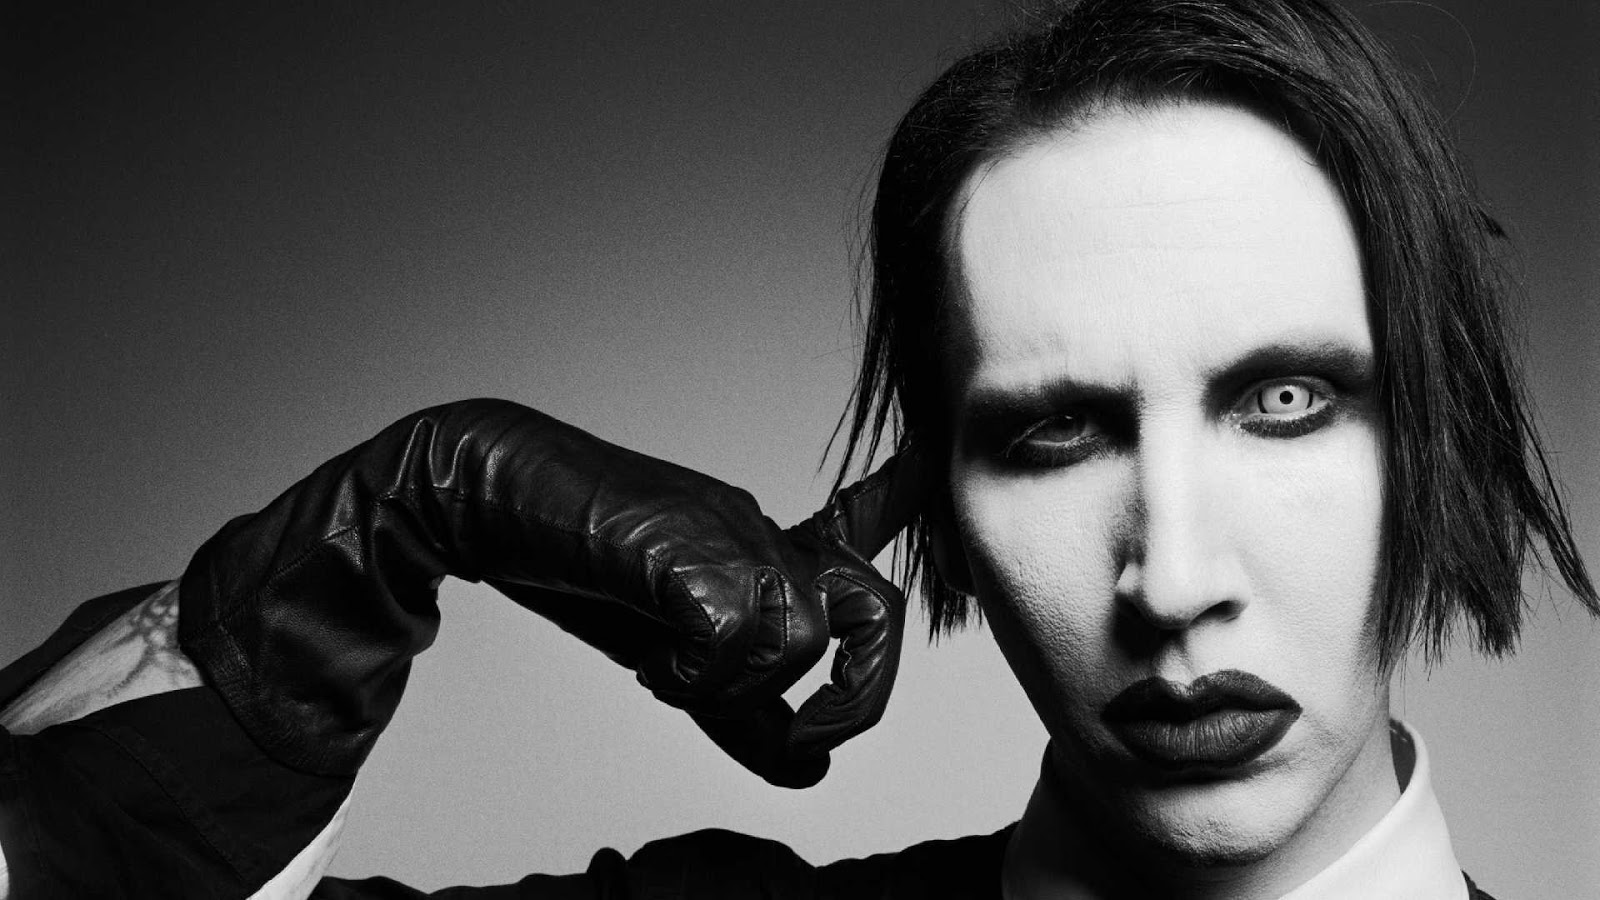 marilyn-manson-photoshoot